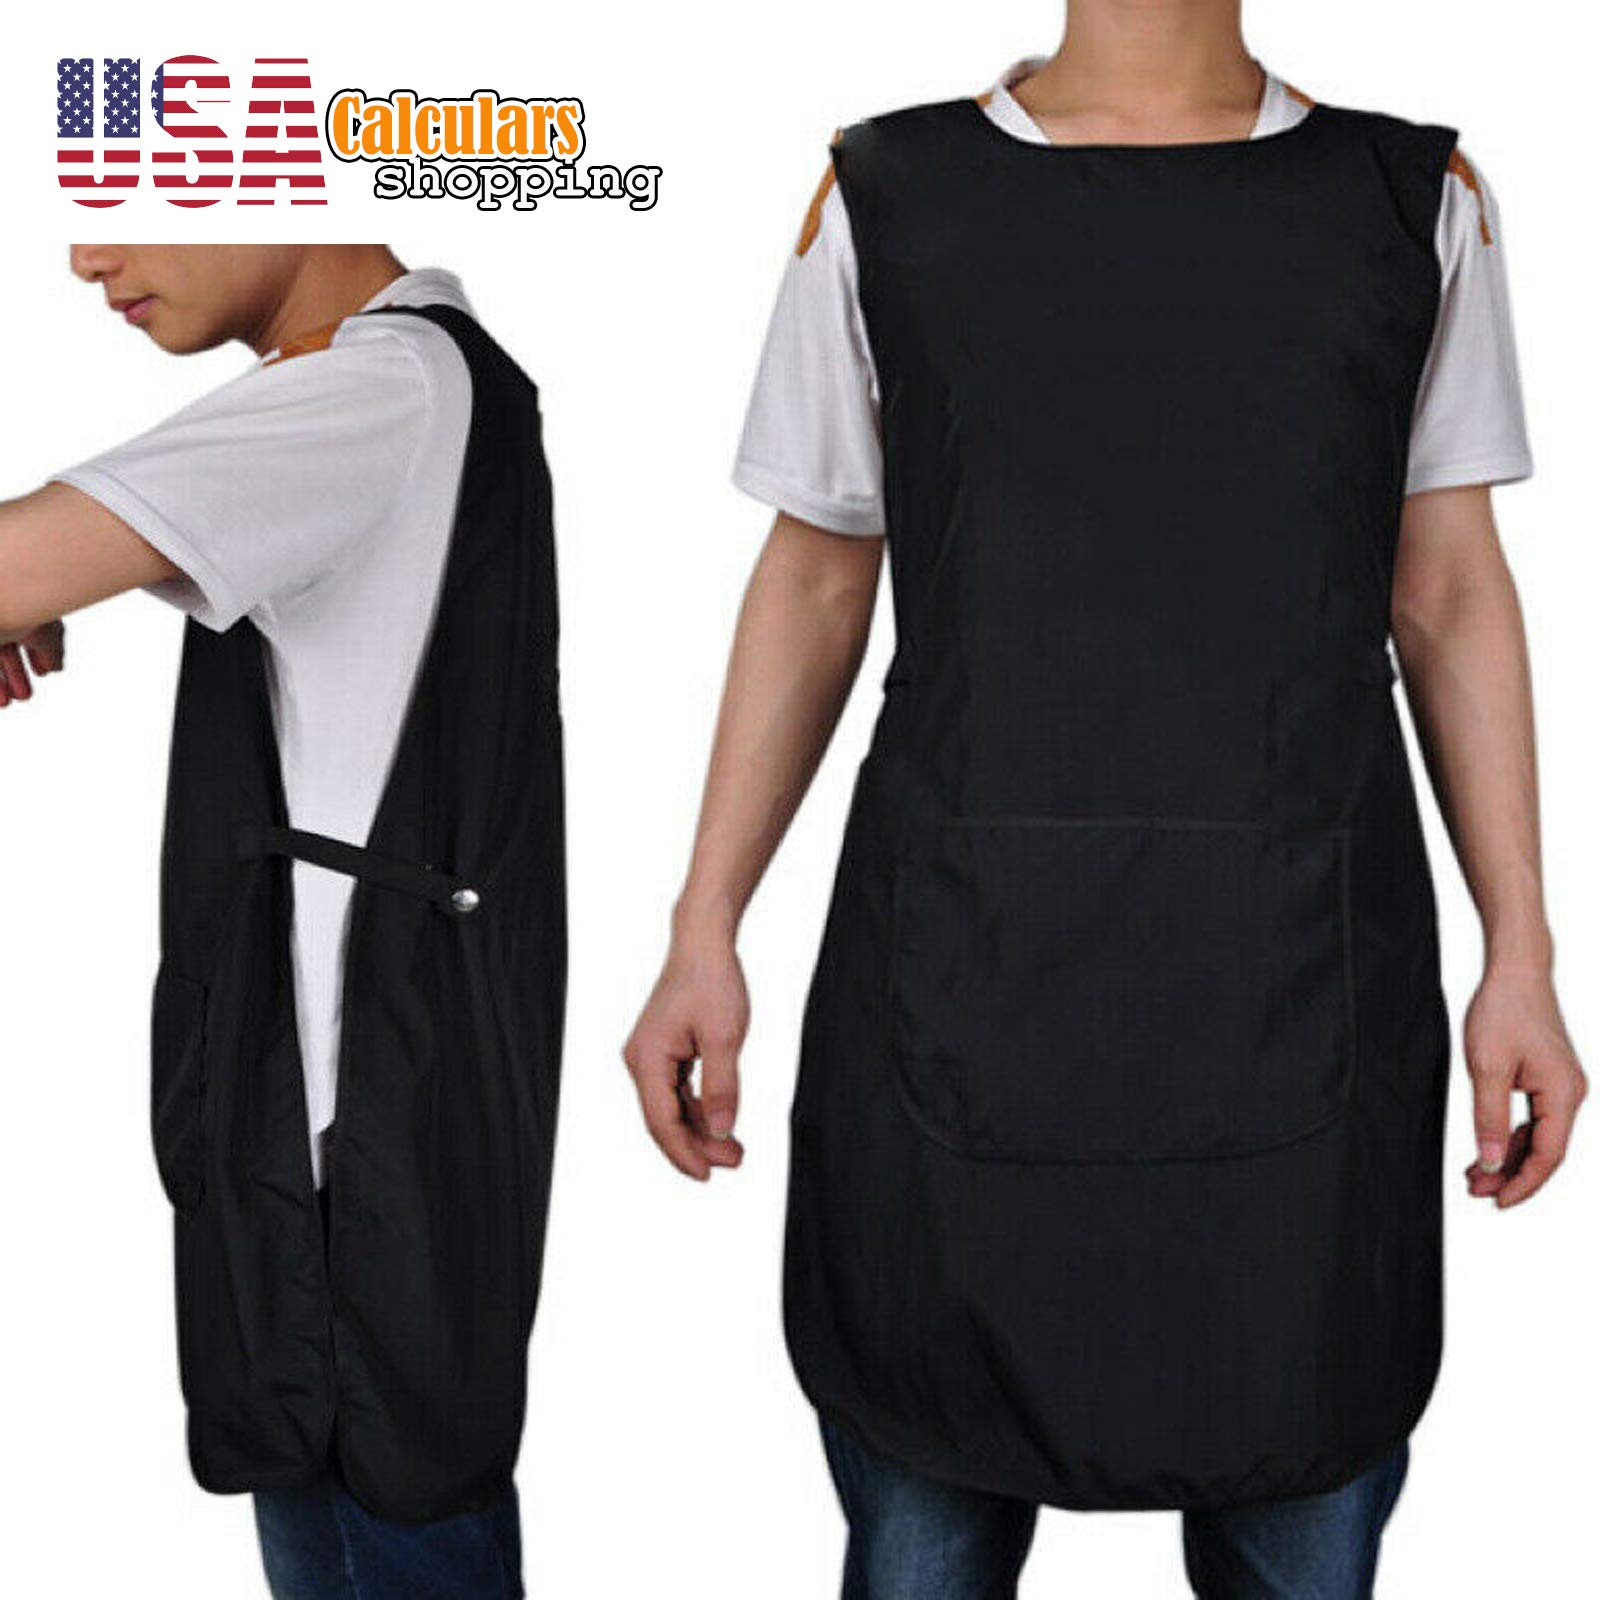 US Seller Front-Back Pro Salon Hair Cutting Apron Barber Hairdressing Gown Cape Cloth by Calculars